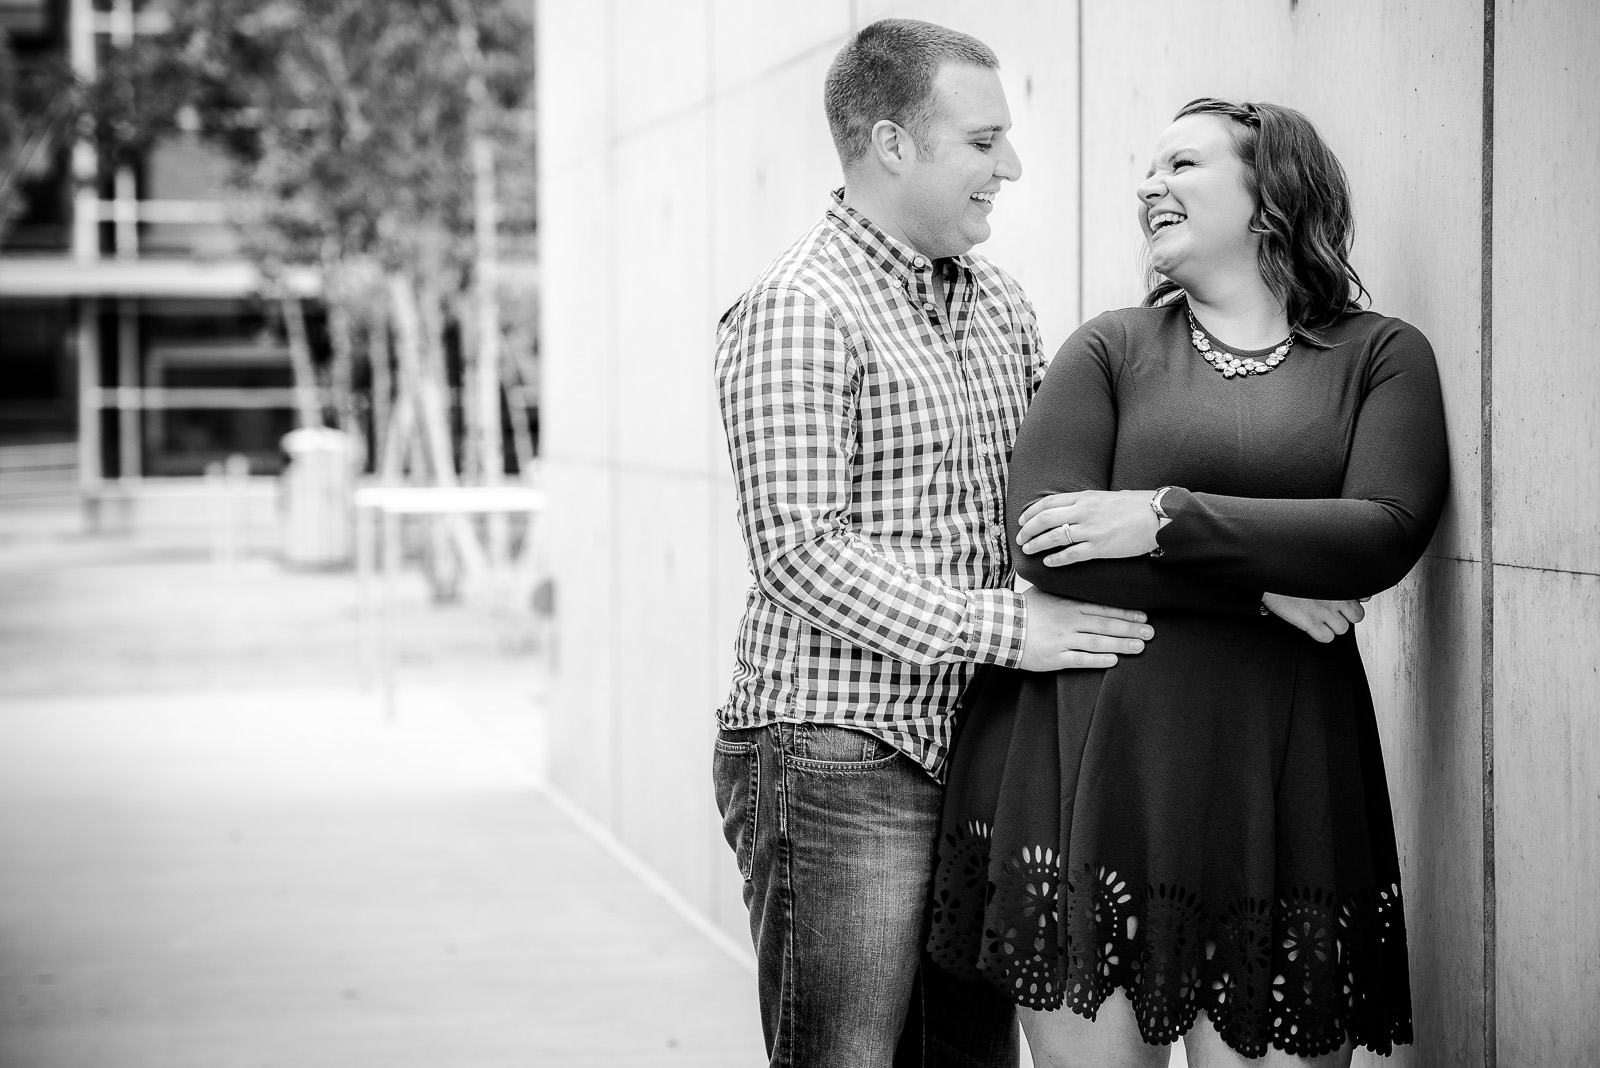 Eric_and_Christy_Photography_Blog_Stacey_Geoff_Engagement-9